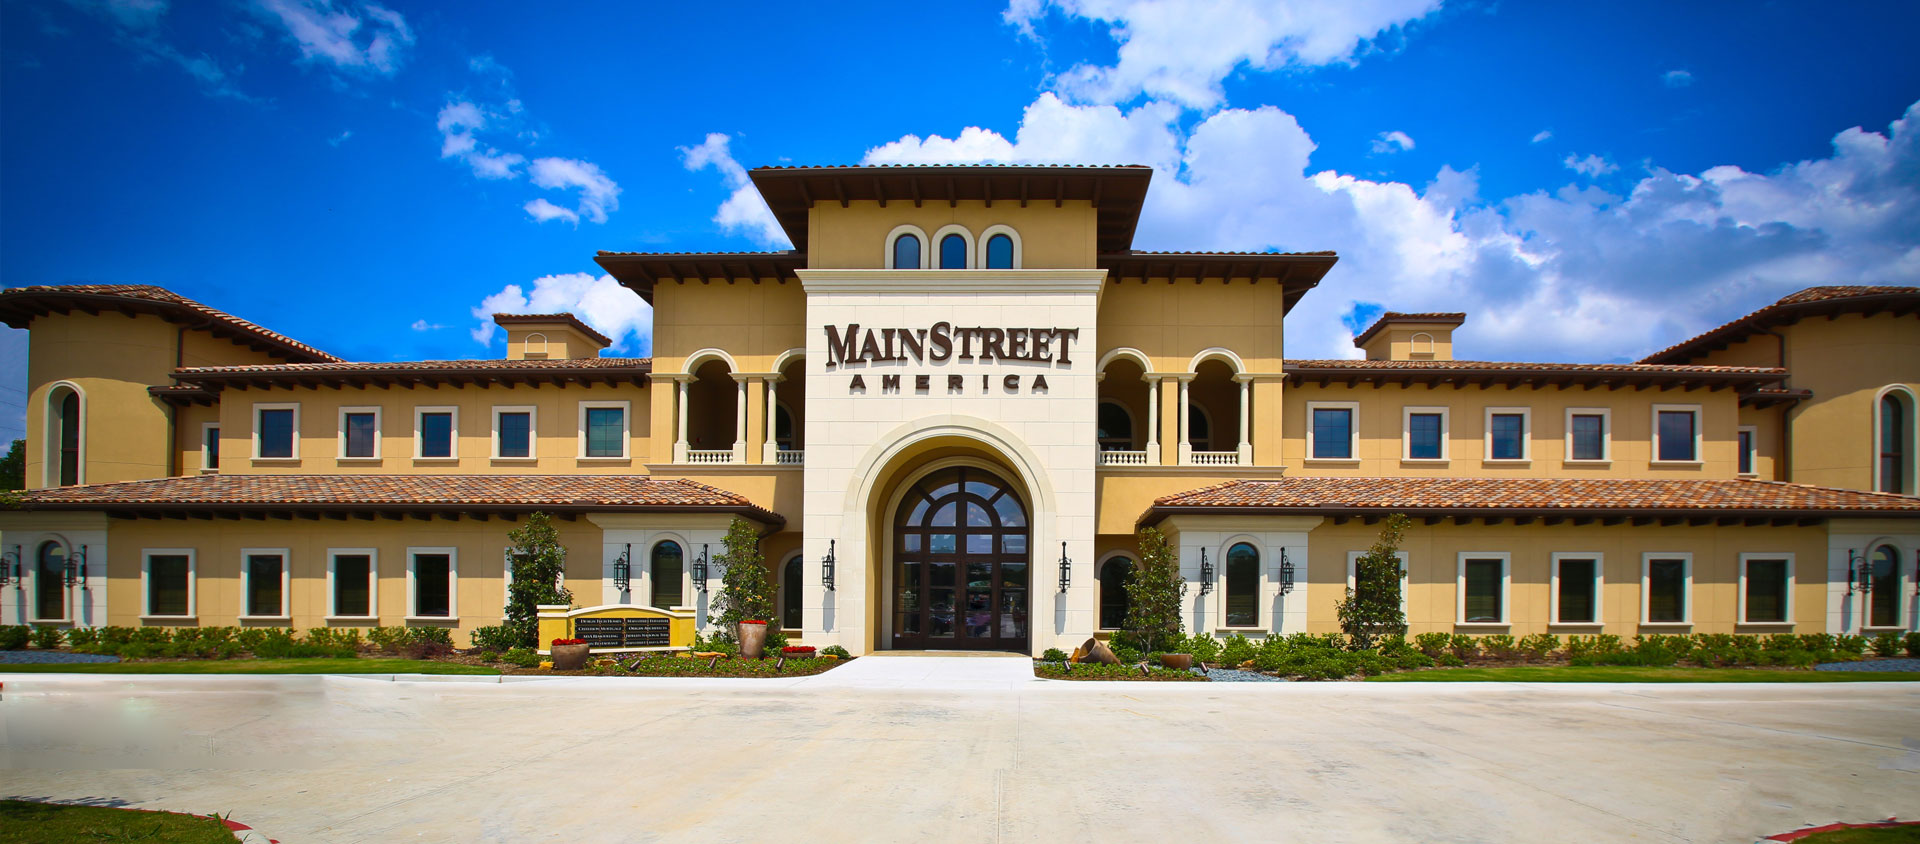 MainStreet America: Fine Furnishings + Fantastic Food